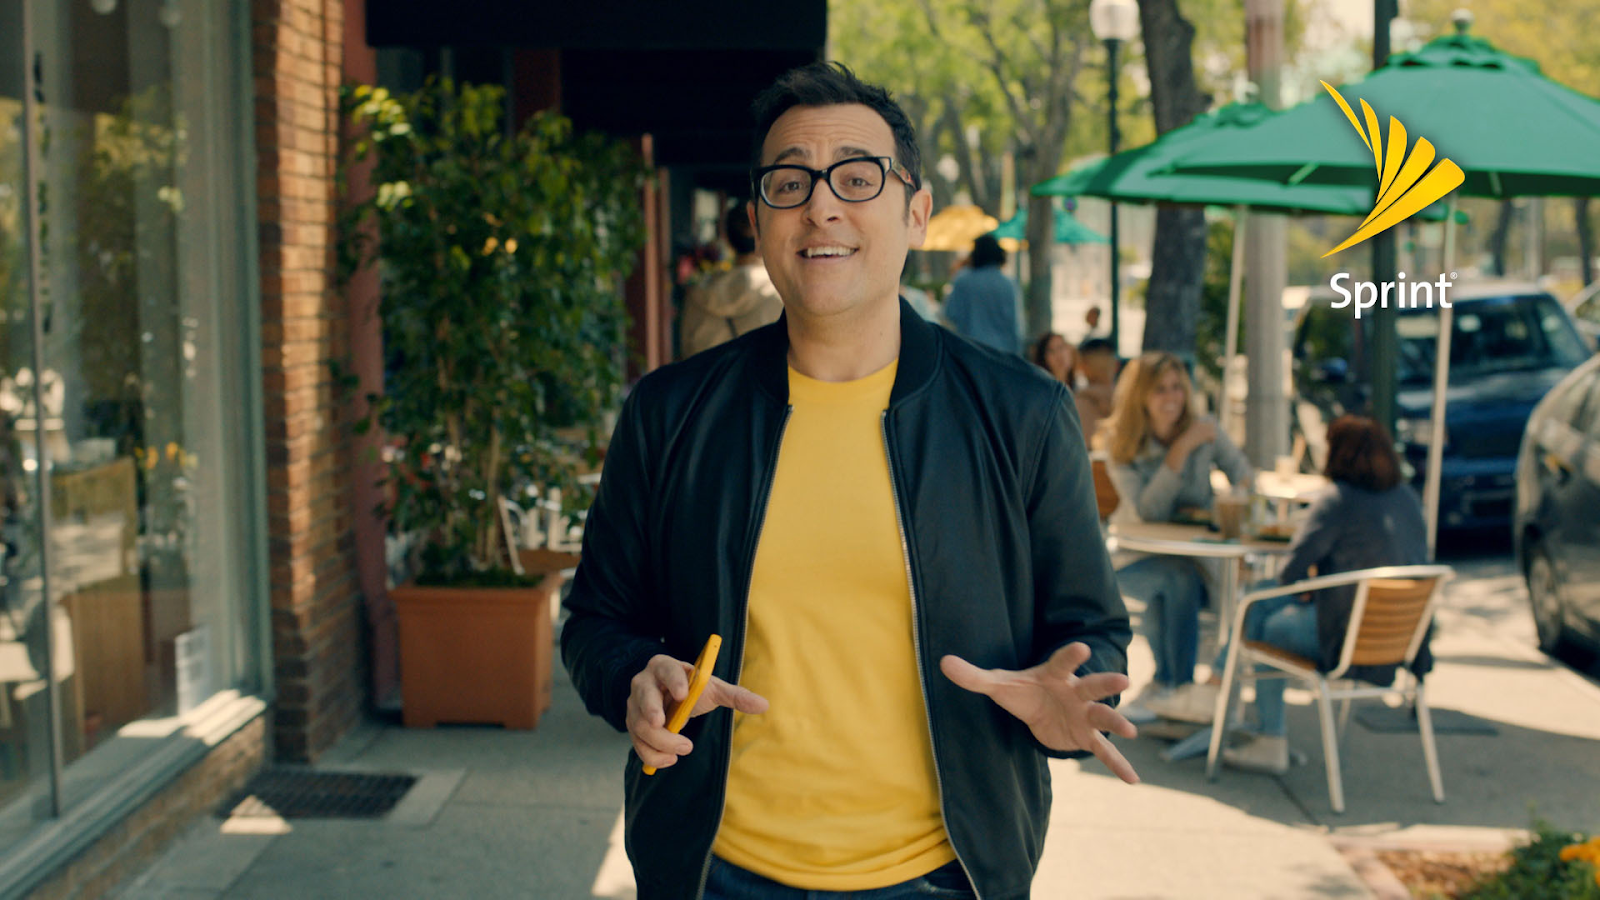 The Sprint advertising guy